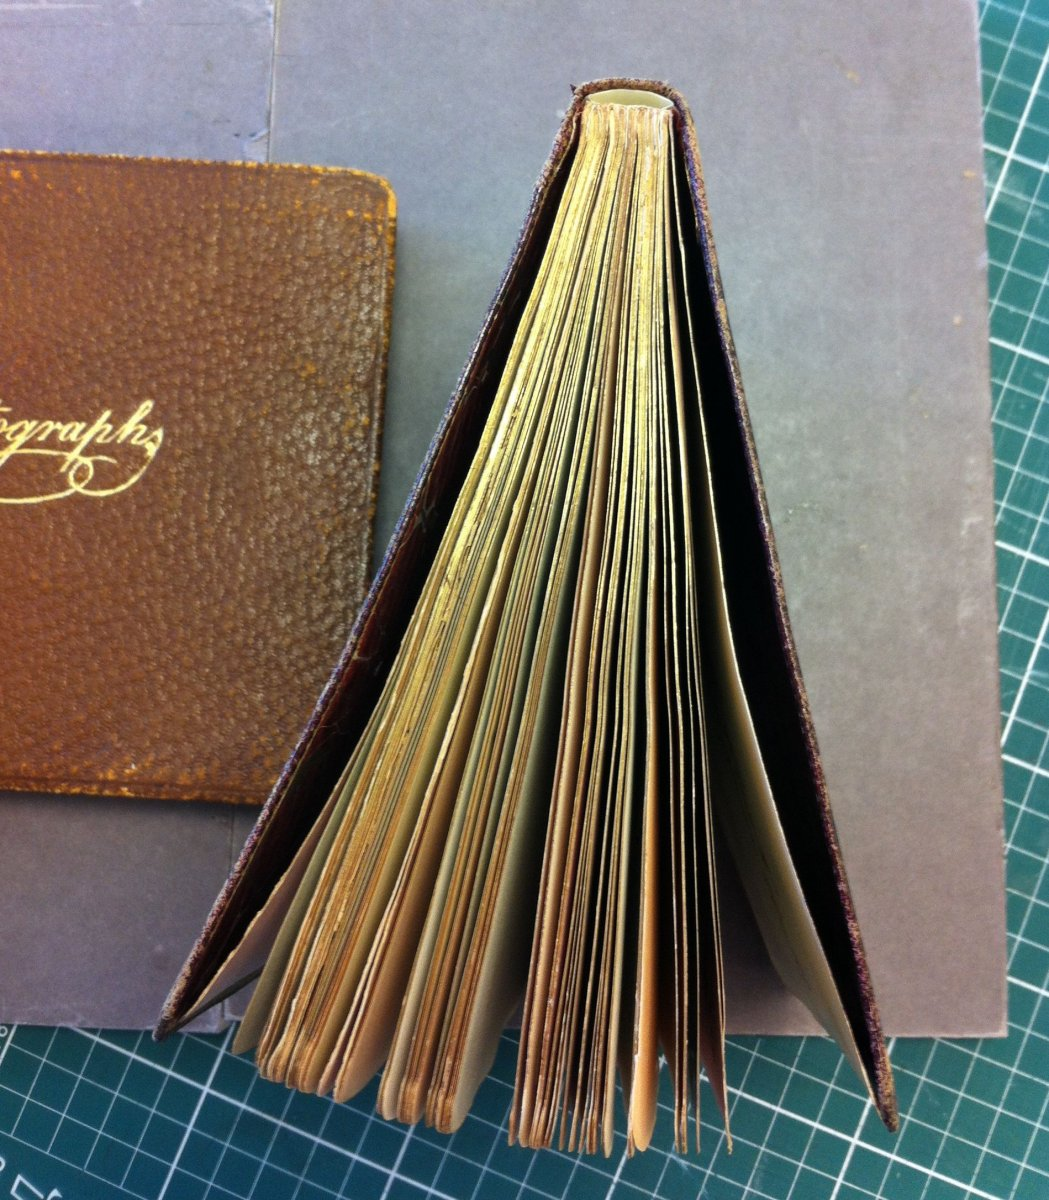 The finished book bound back into its original cover